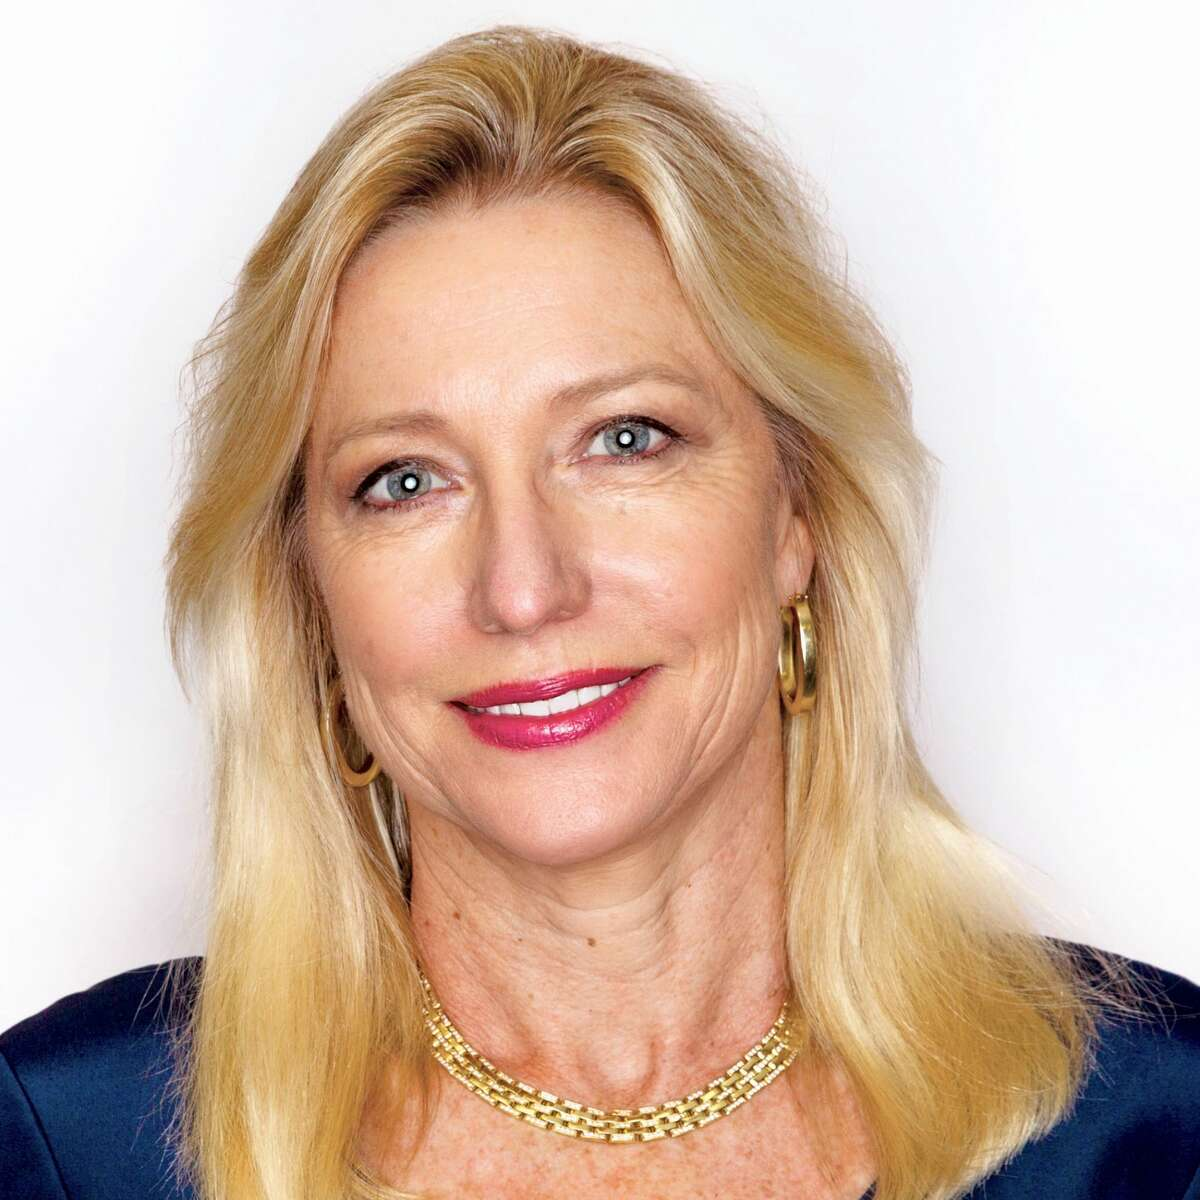 Amanda Brock is the founder of Water Standard and chief commercial officer of Solaris Midstream. She was invited to the White House in 2015 and 2016 to participate in the US Water Initiative. She serves on the Boards of Cabot Oil & Gas, Water Standard, Texas Business Hall of Fame, among other boards.